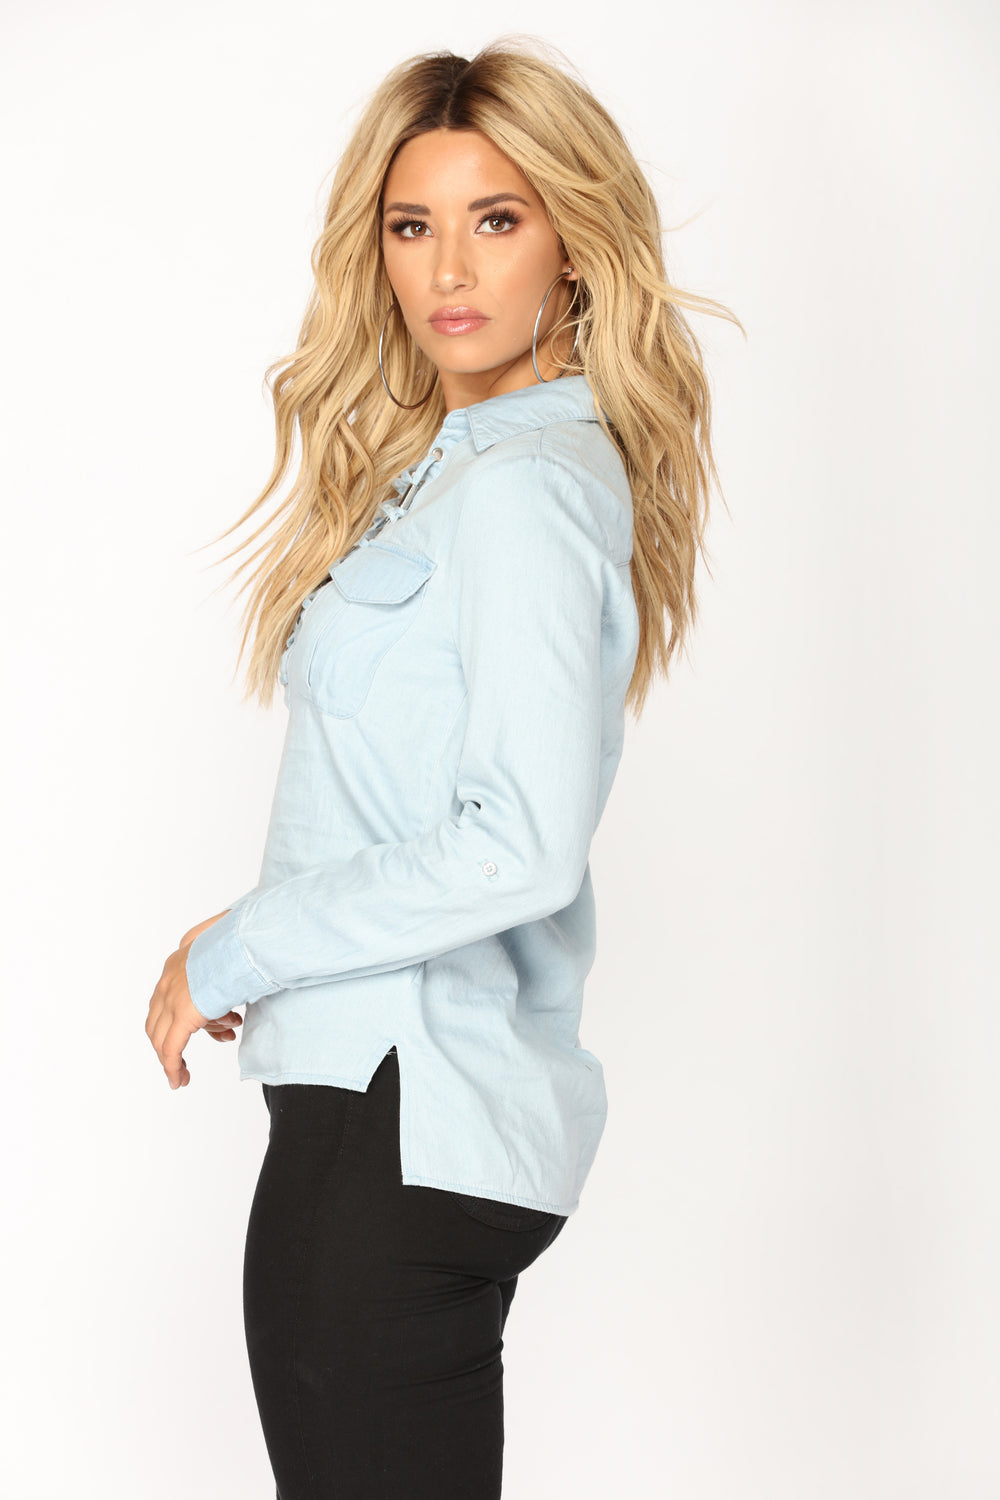 Leah Lace Up Shirt - Light Wash